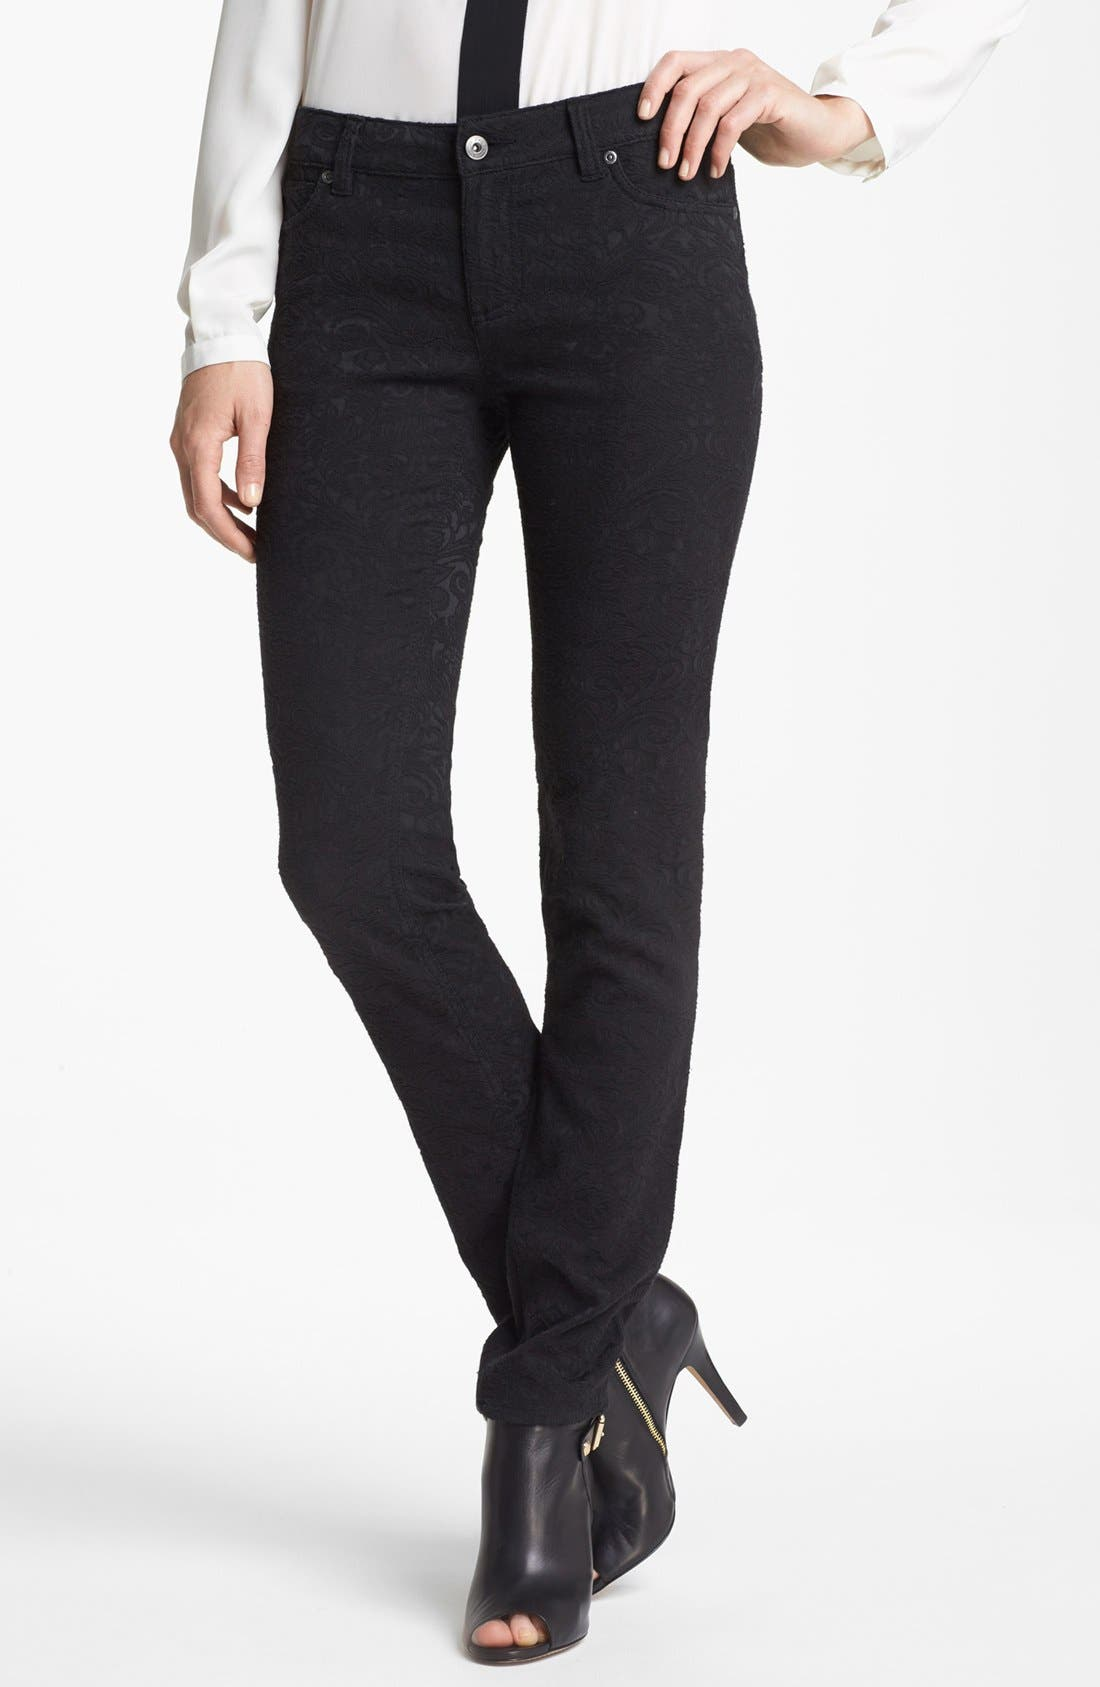 Main Image - Two by Vince Camuto Tonal Jacquard Jeans